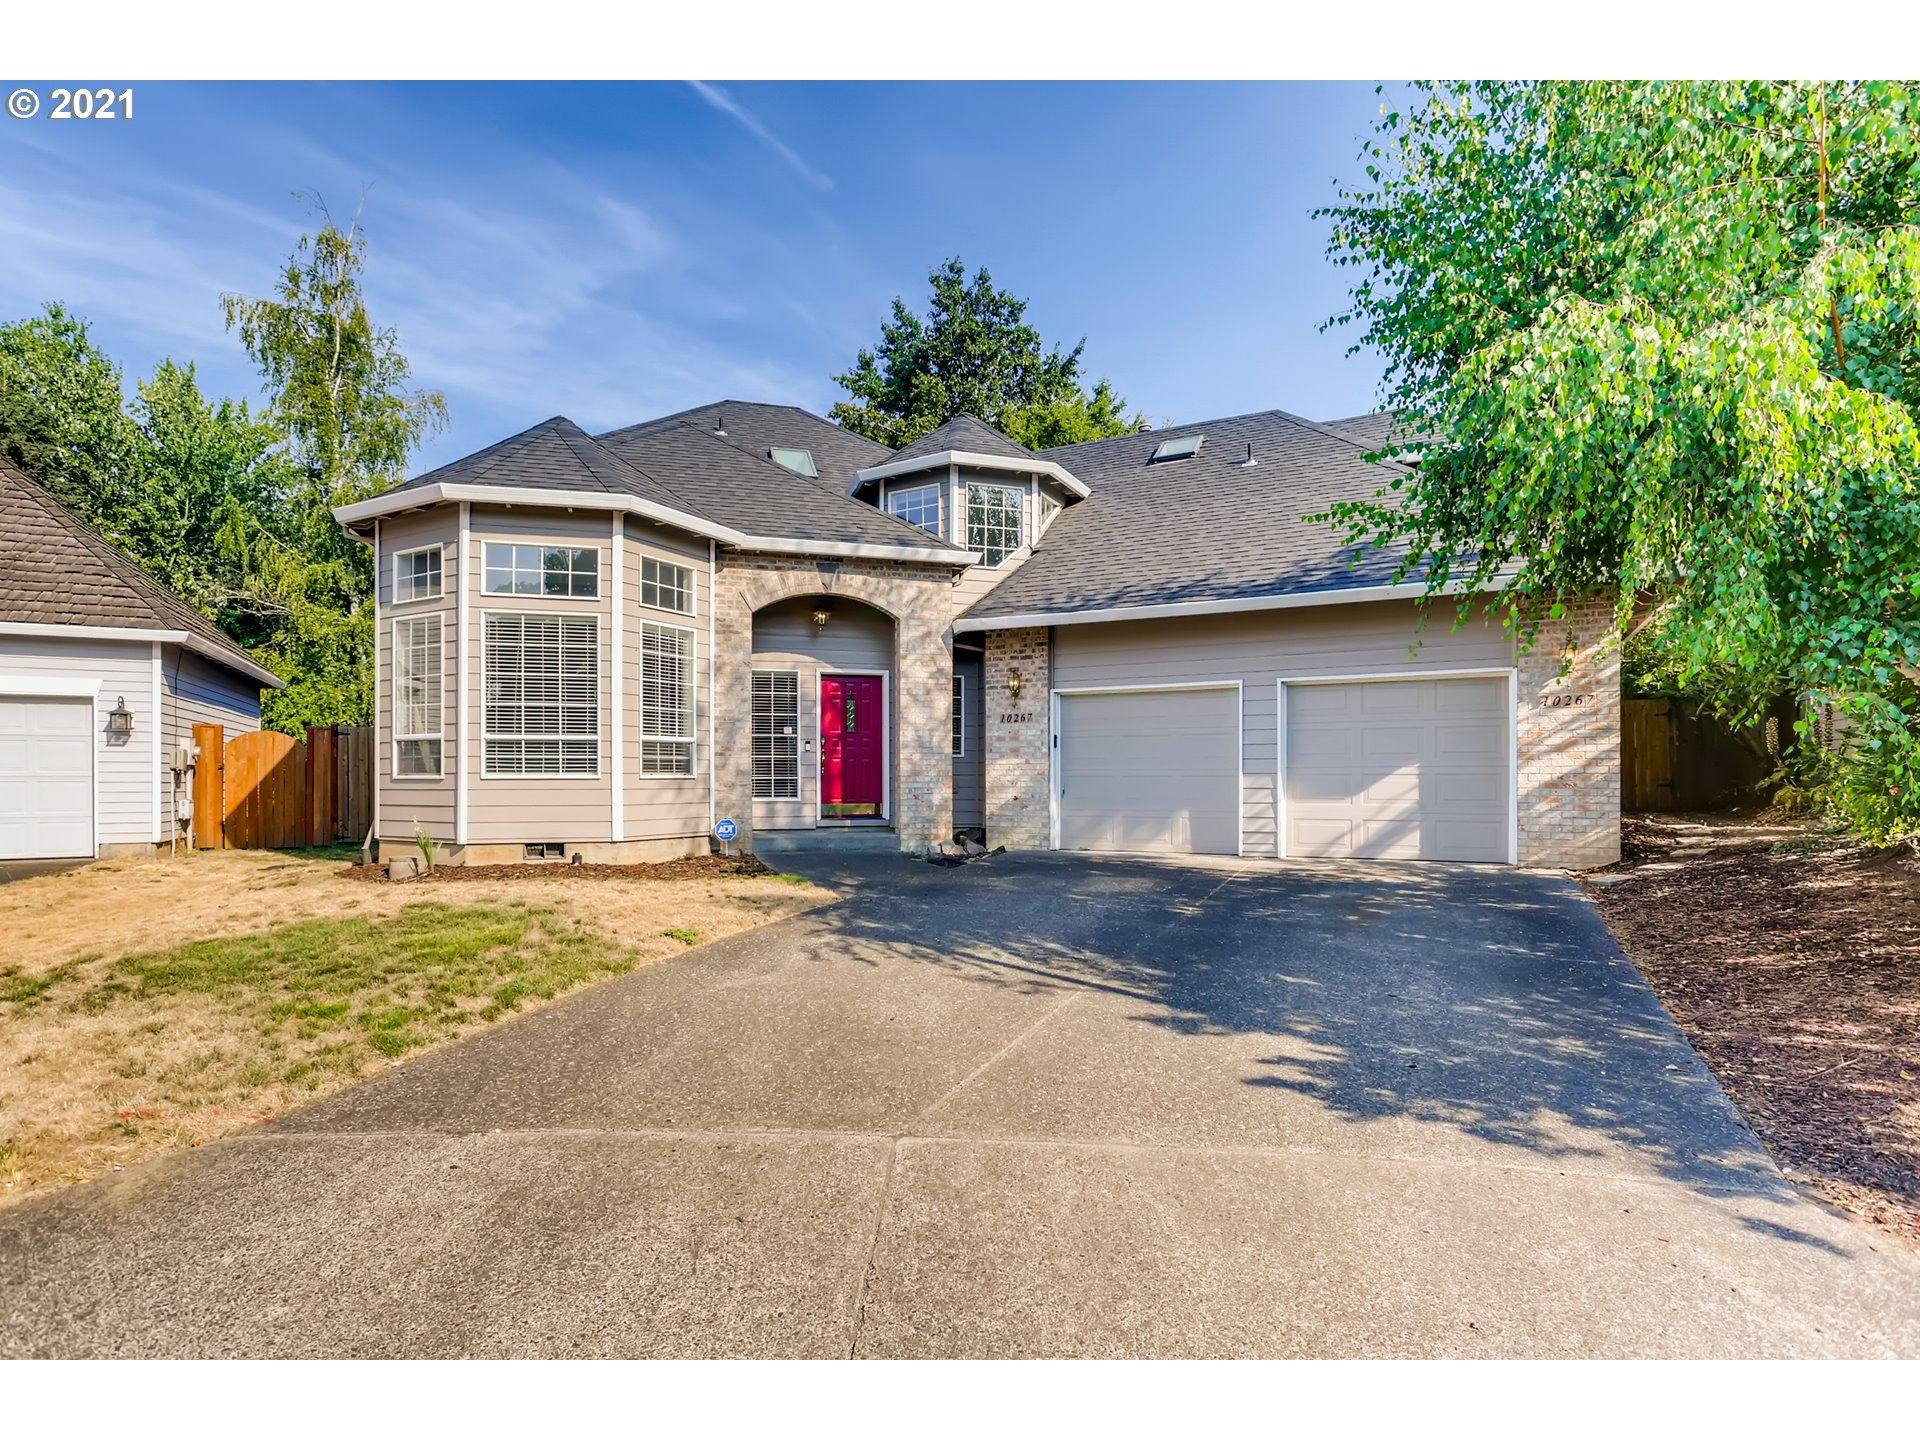 10267 SW ELISE CT, Tigard, OR 97224 - MLS#: 21619589